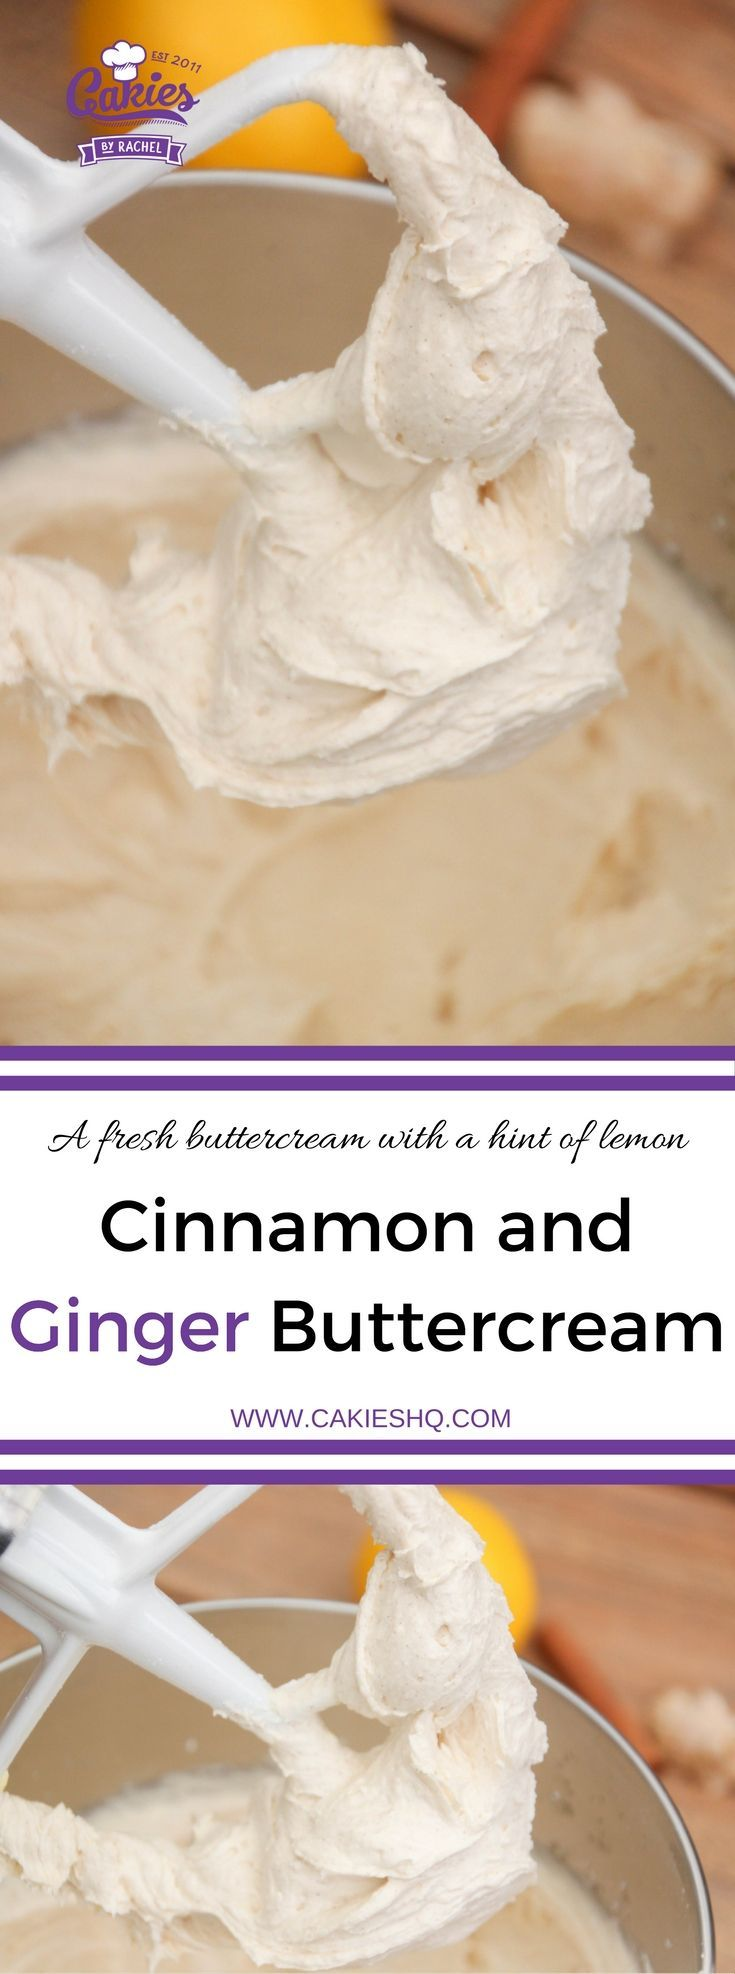 This amazing cinnamon and ginger buttercream with and a hint of lemon goes well with pumpkin pecan cupcakes and makes a great filling for cakes.